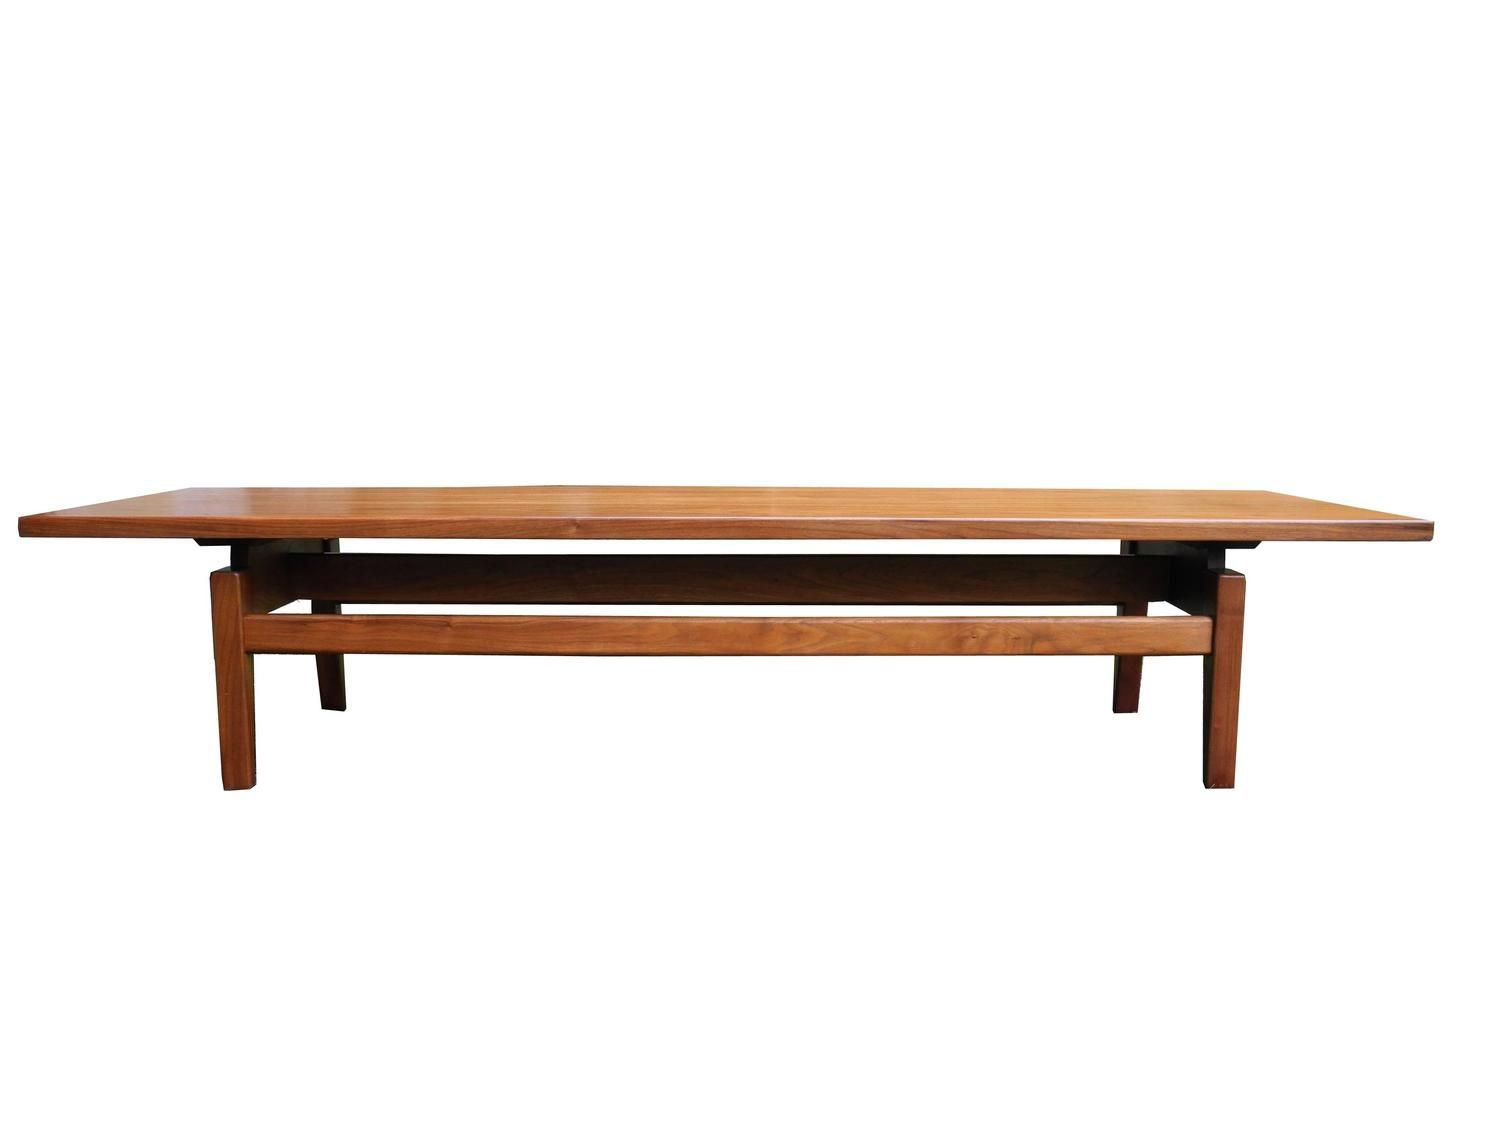 Mid Century Modern Solid Walnut Low Coffee Table Or Long Bench By Jens Risom 2 Low Coffee Table Coffee And Cocktail Tables Walnut Coffee Table [ 1125 x 1500 Pixel ]